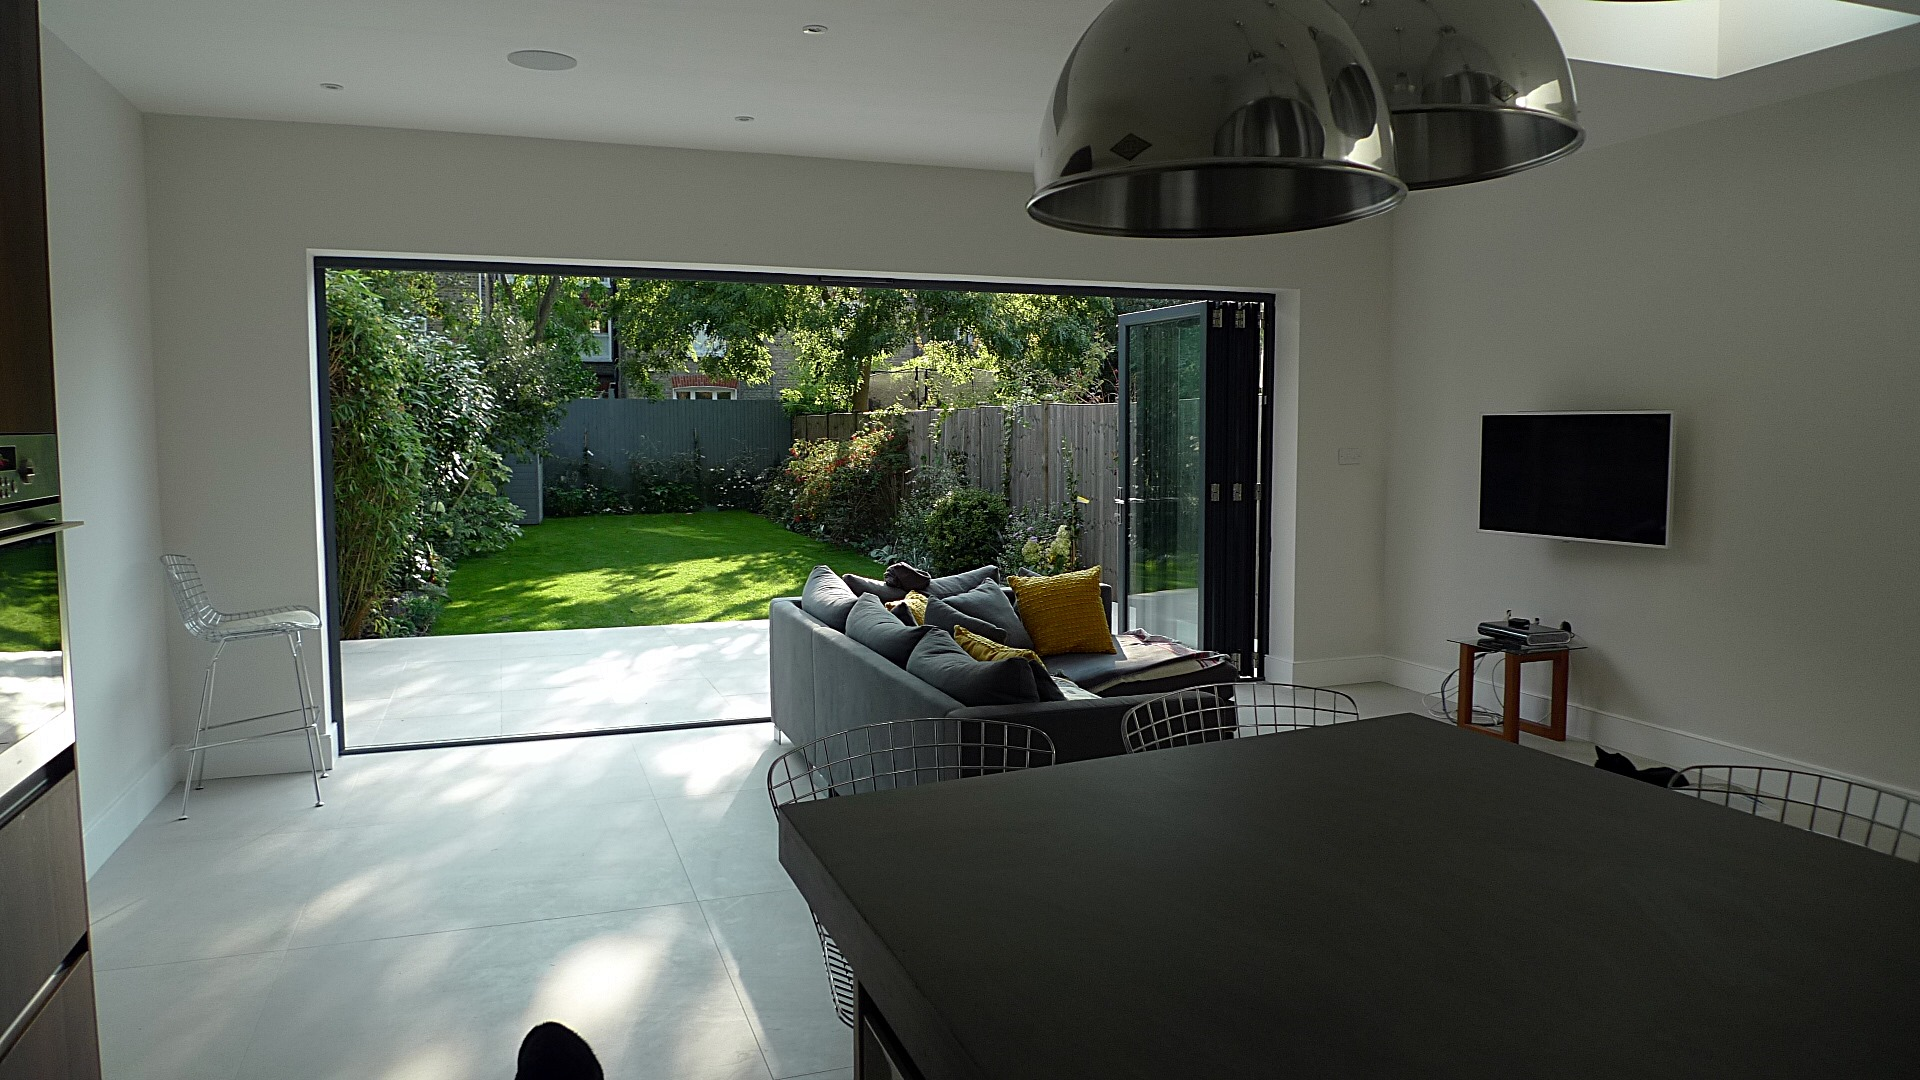 modern sleak design ideas interior exterior garden house design Weaver Balham Tooting London (7)